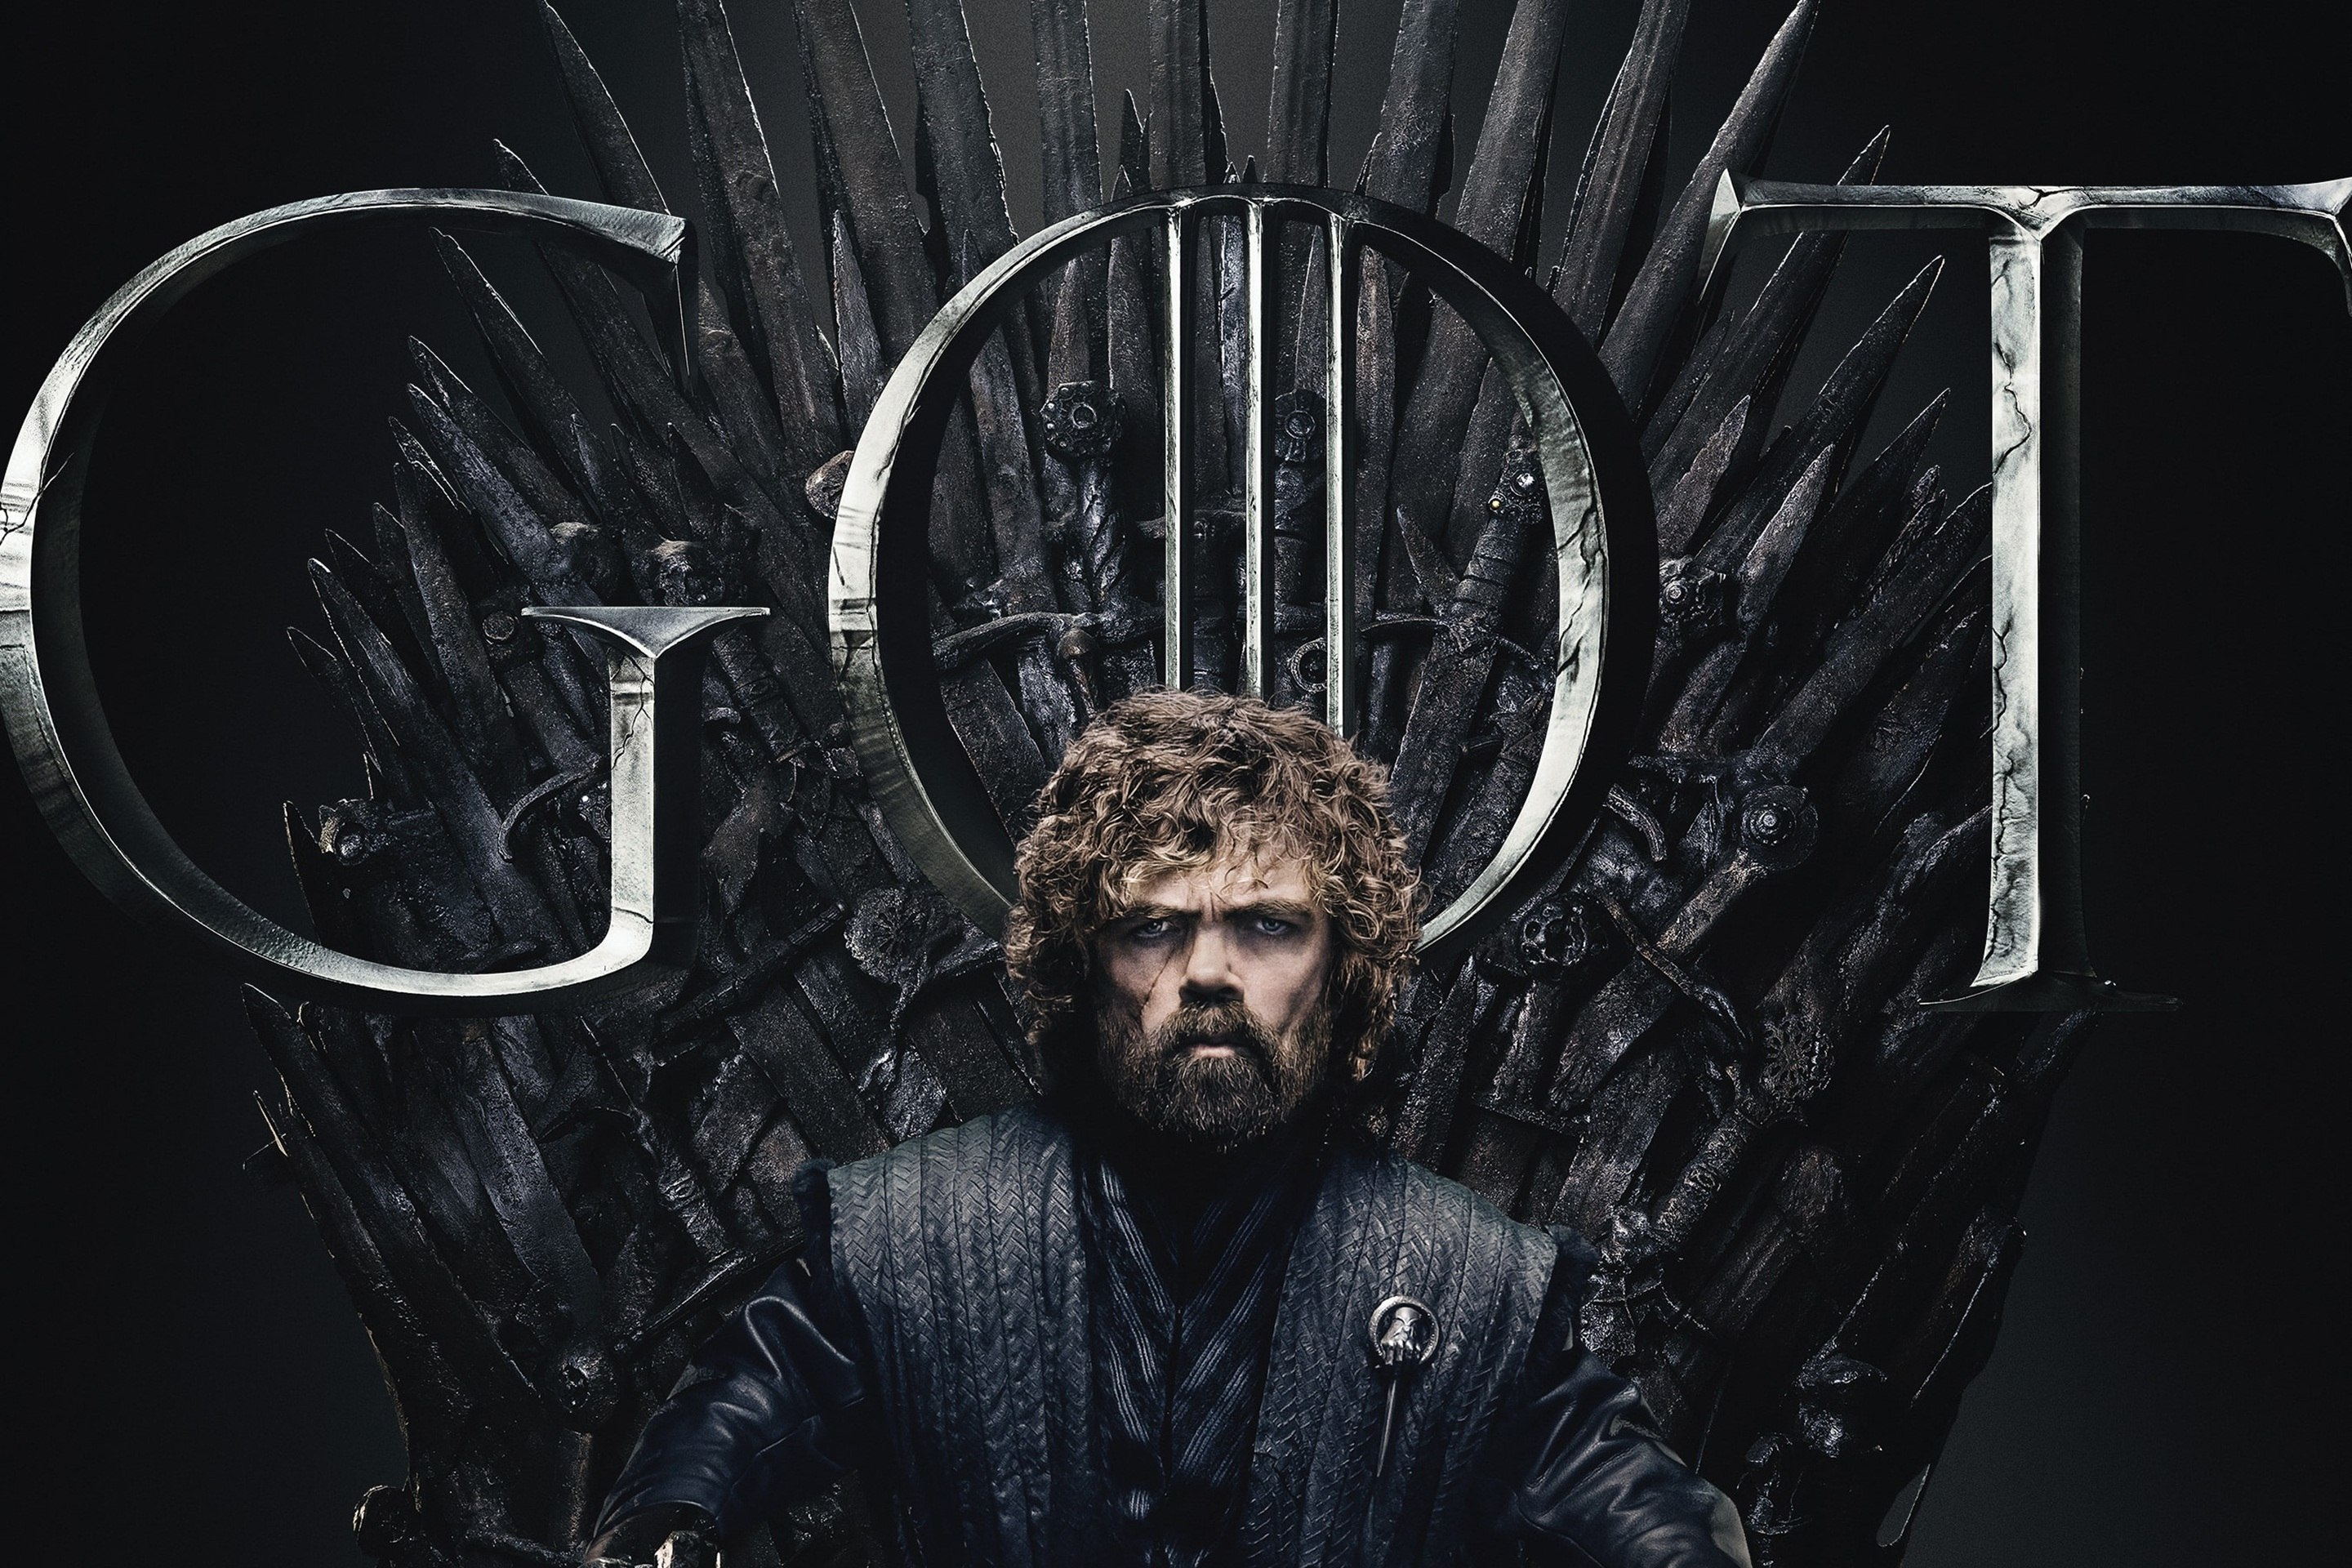 Tyrion Lannisters Game of Thrones Season 8 Wallpaper 39912   Baltana 2880x1920